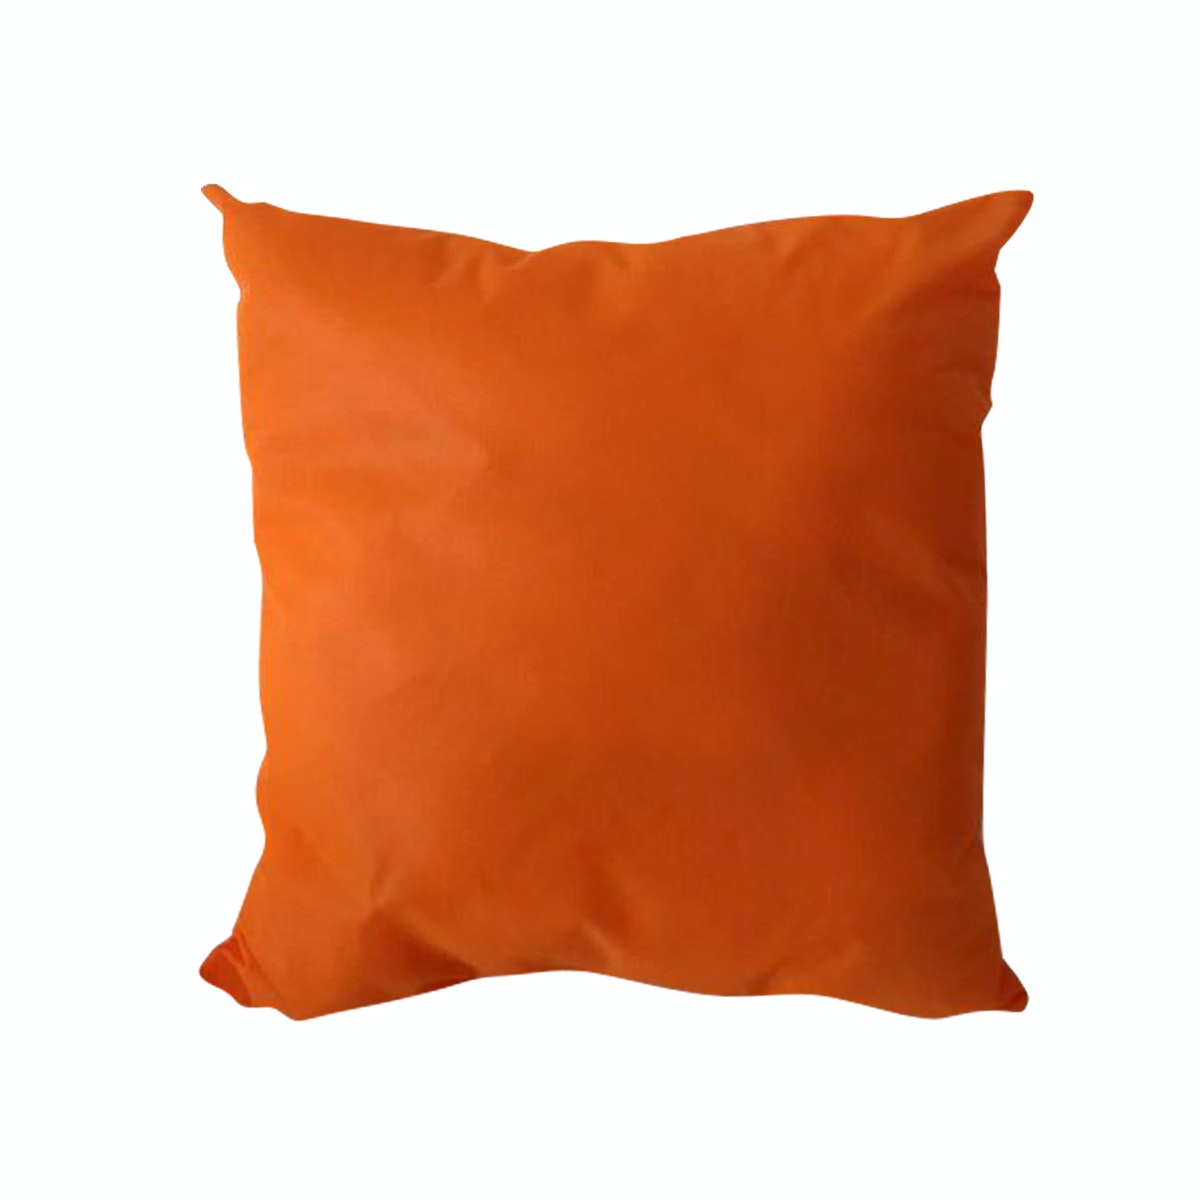 ELHA Bantal Dakron Orange 40x40cm